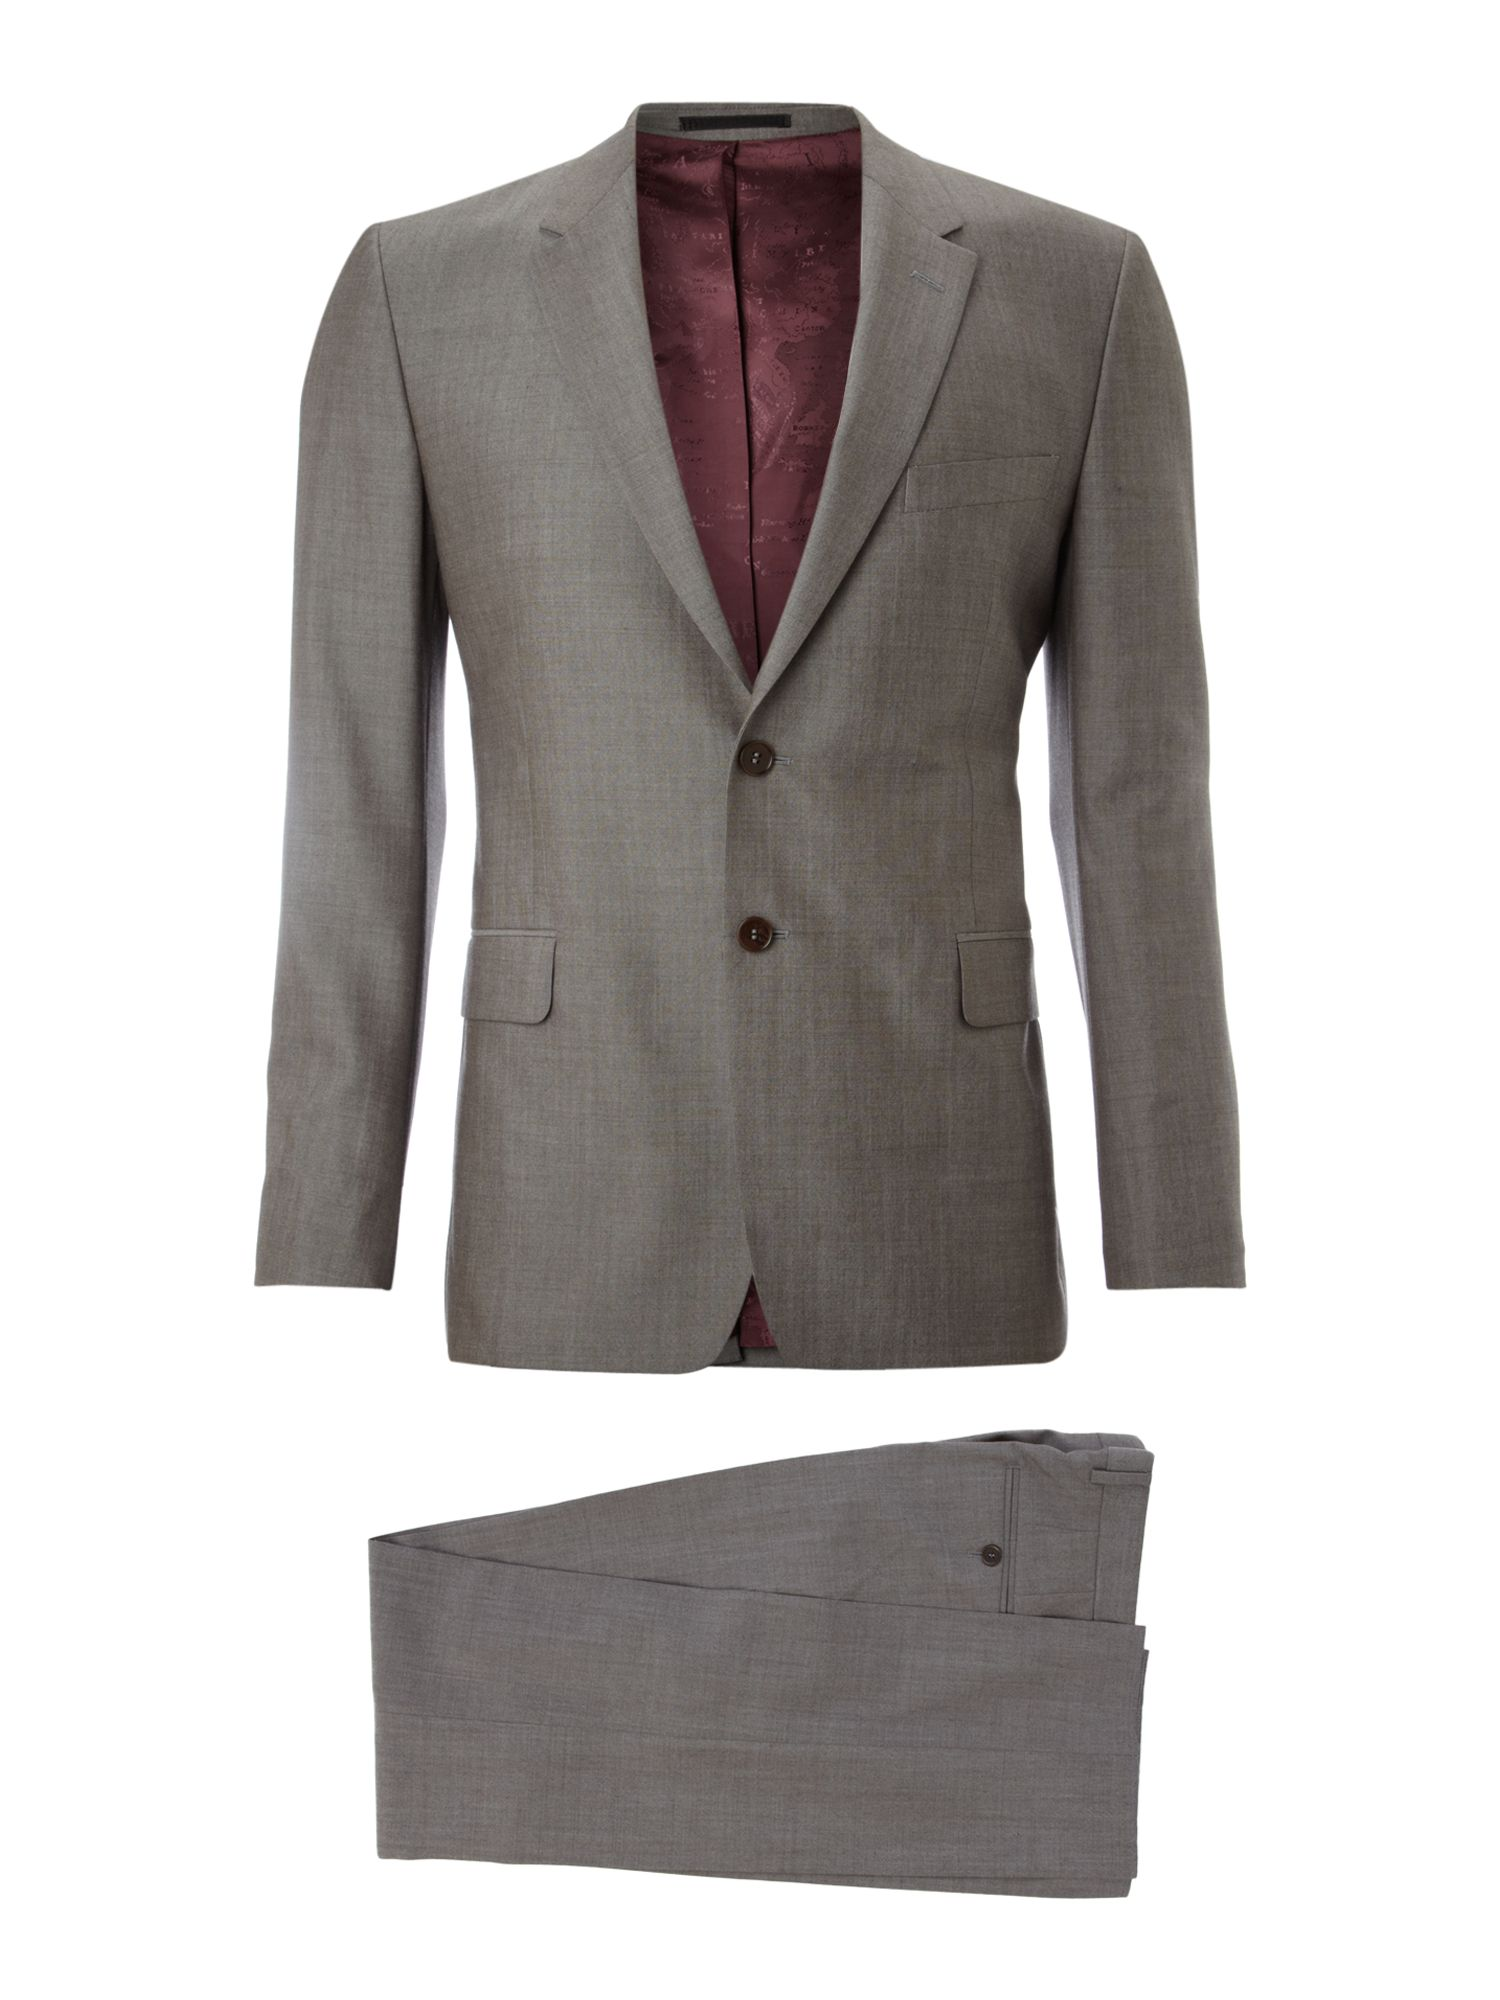 Floral pewter wool suit